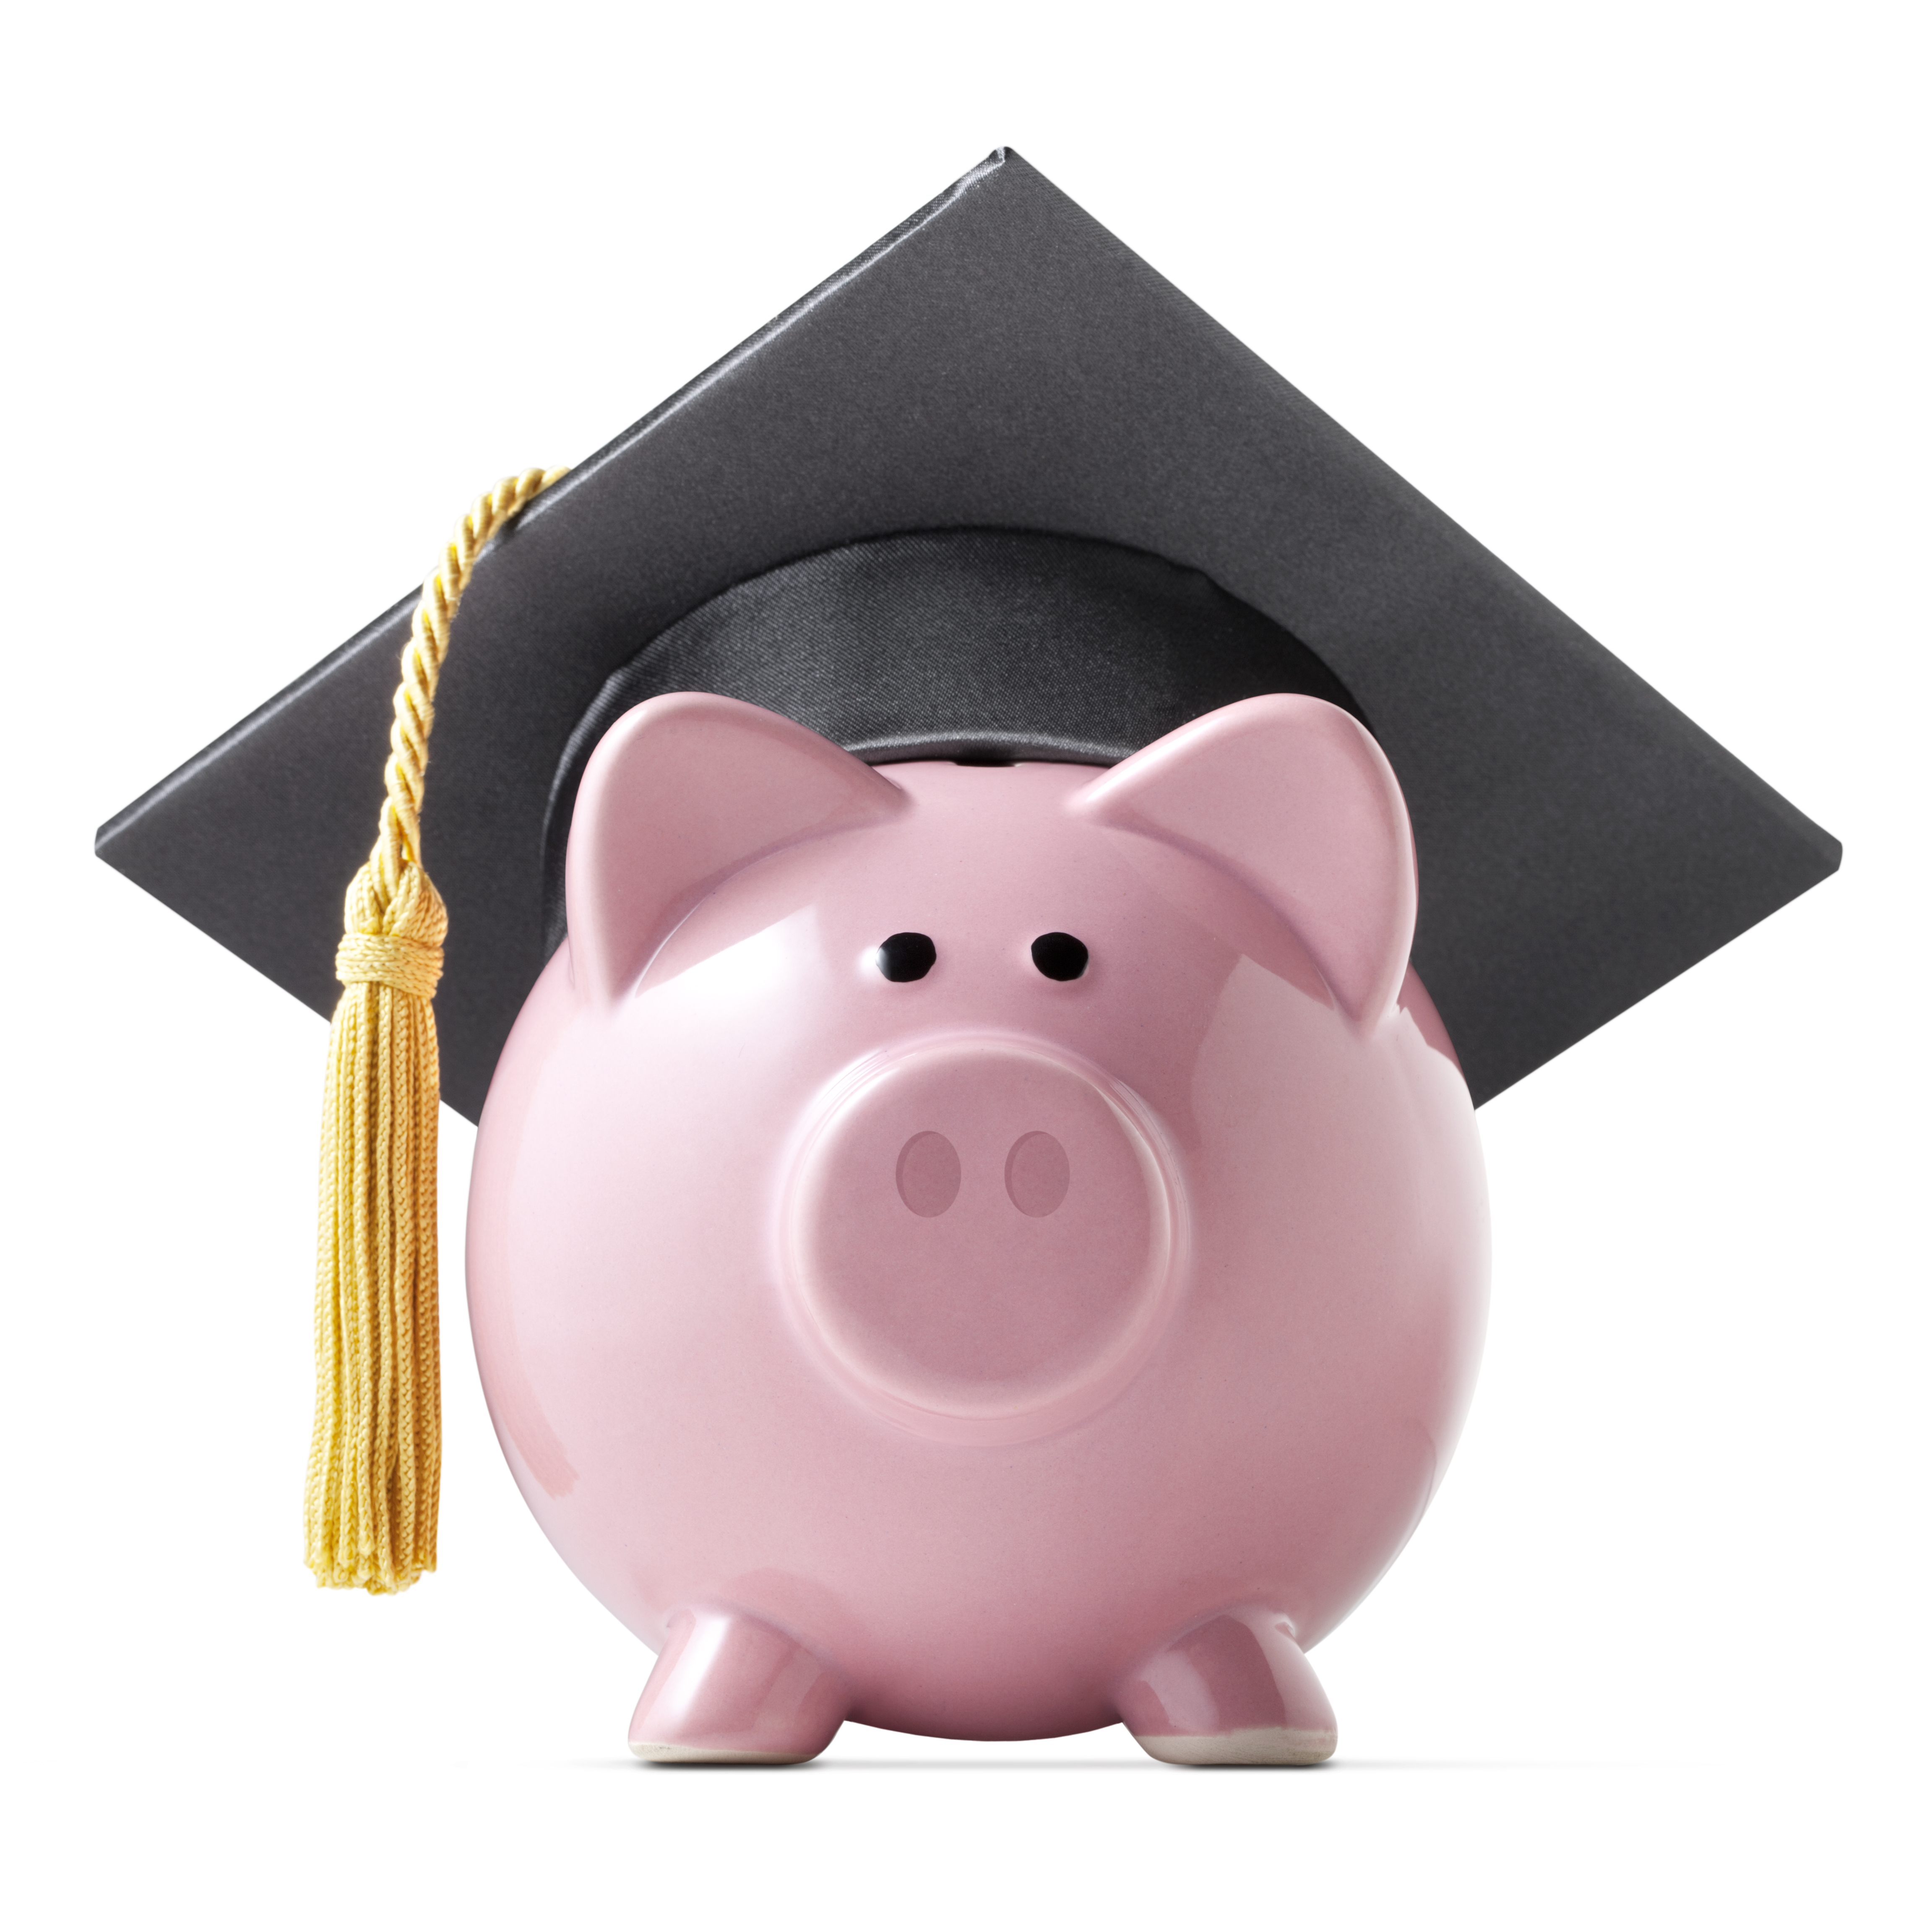 Financial aid grants, scholarships and student loans